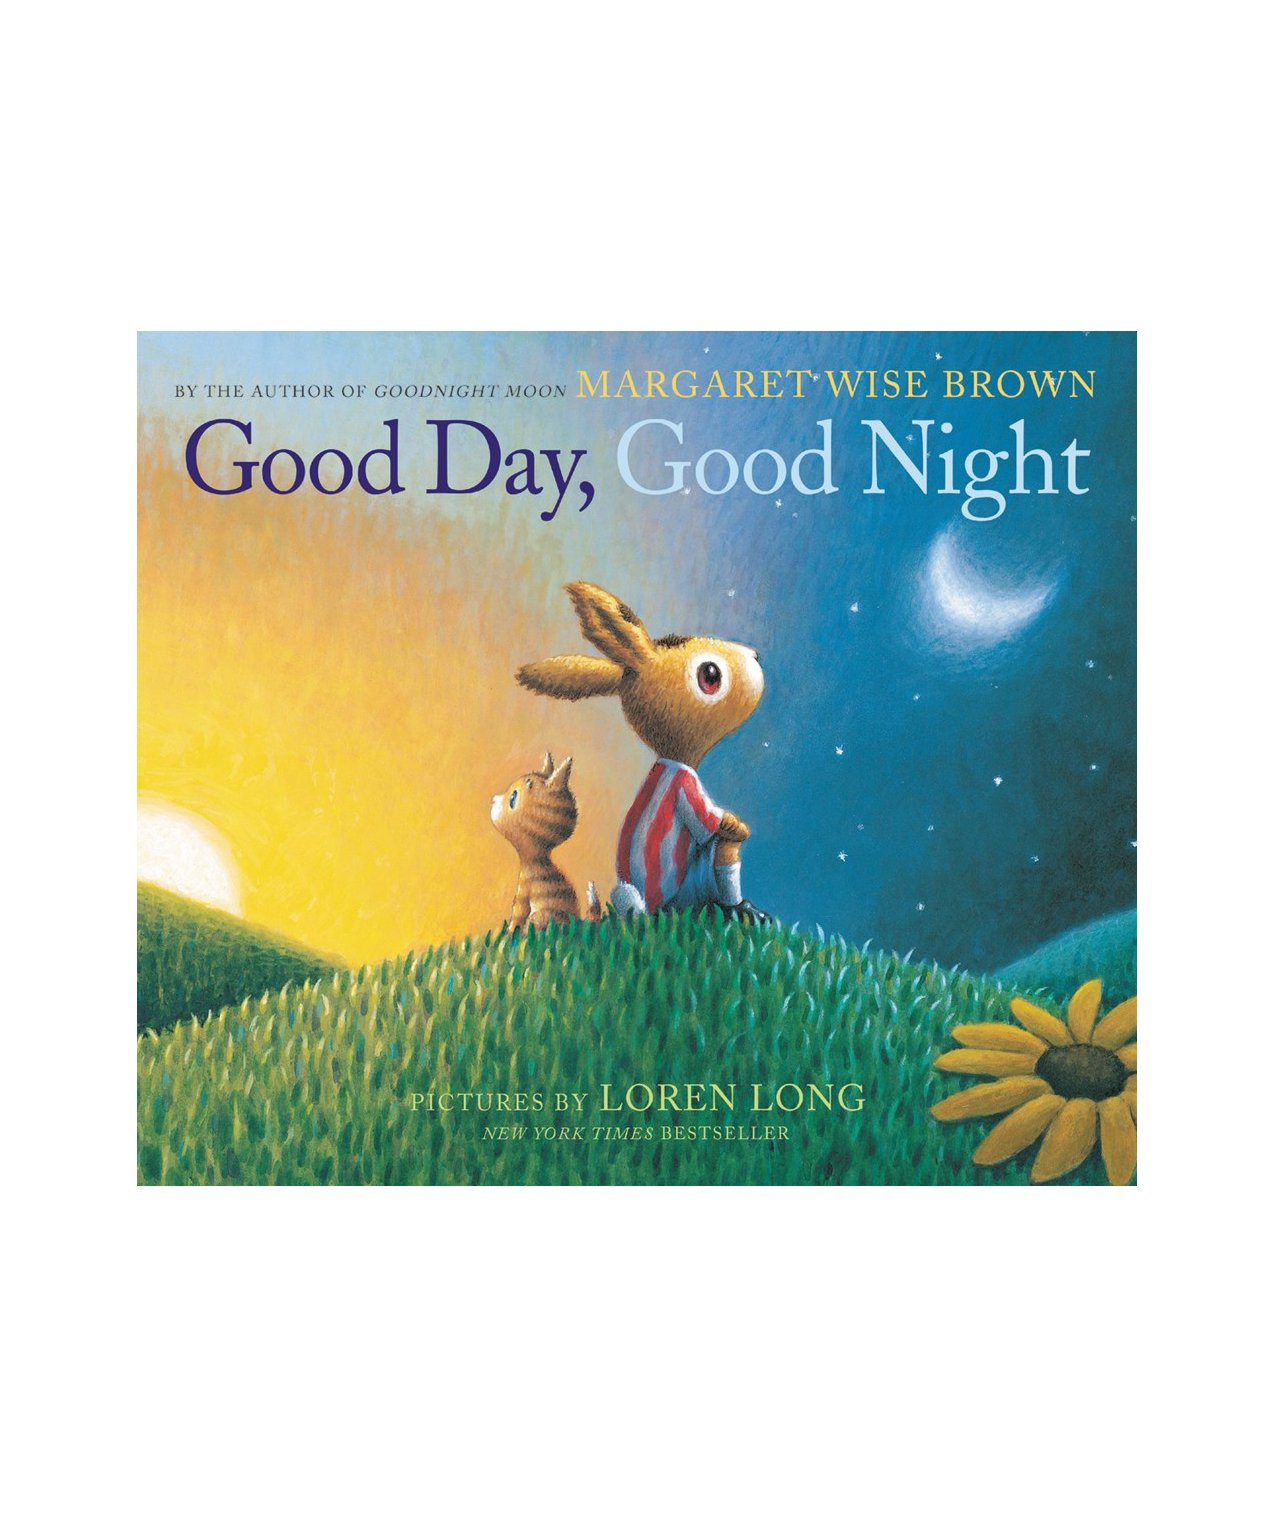 Good Day, Good Night, by Margaret Wise Brown